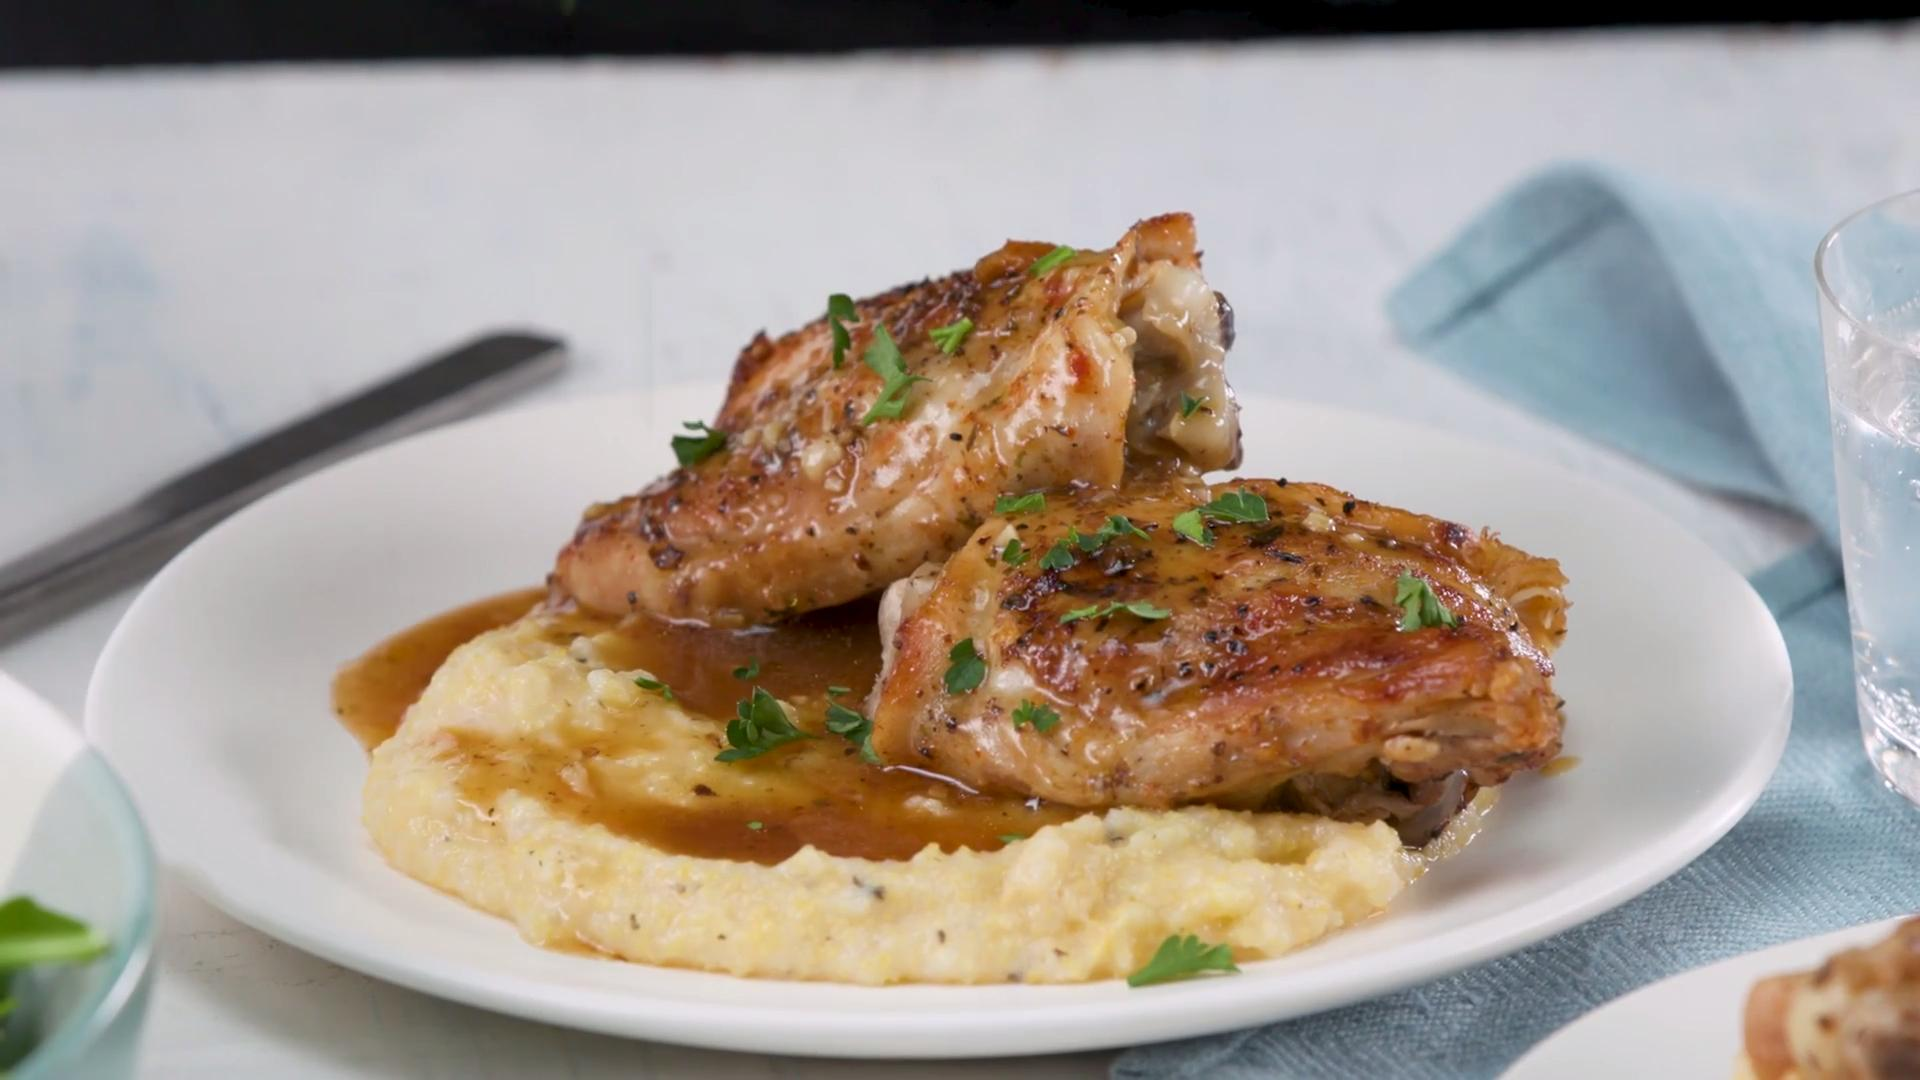 How to Make Instant Pot Garlic Chicken Thighs with Gravy - Cooking